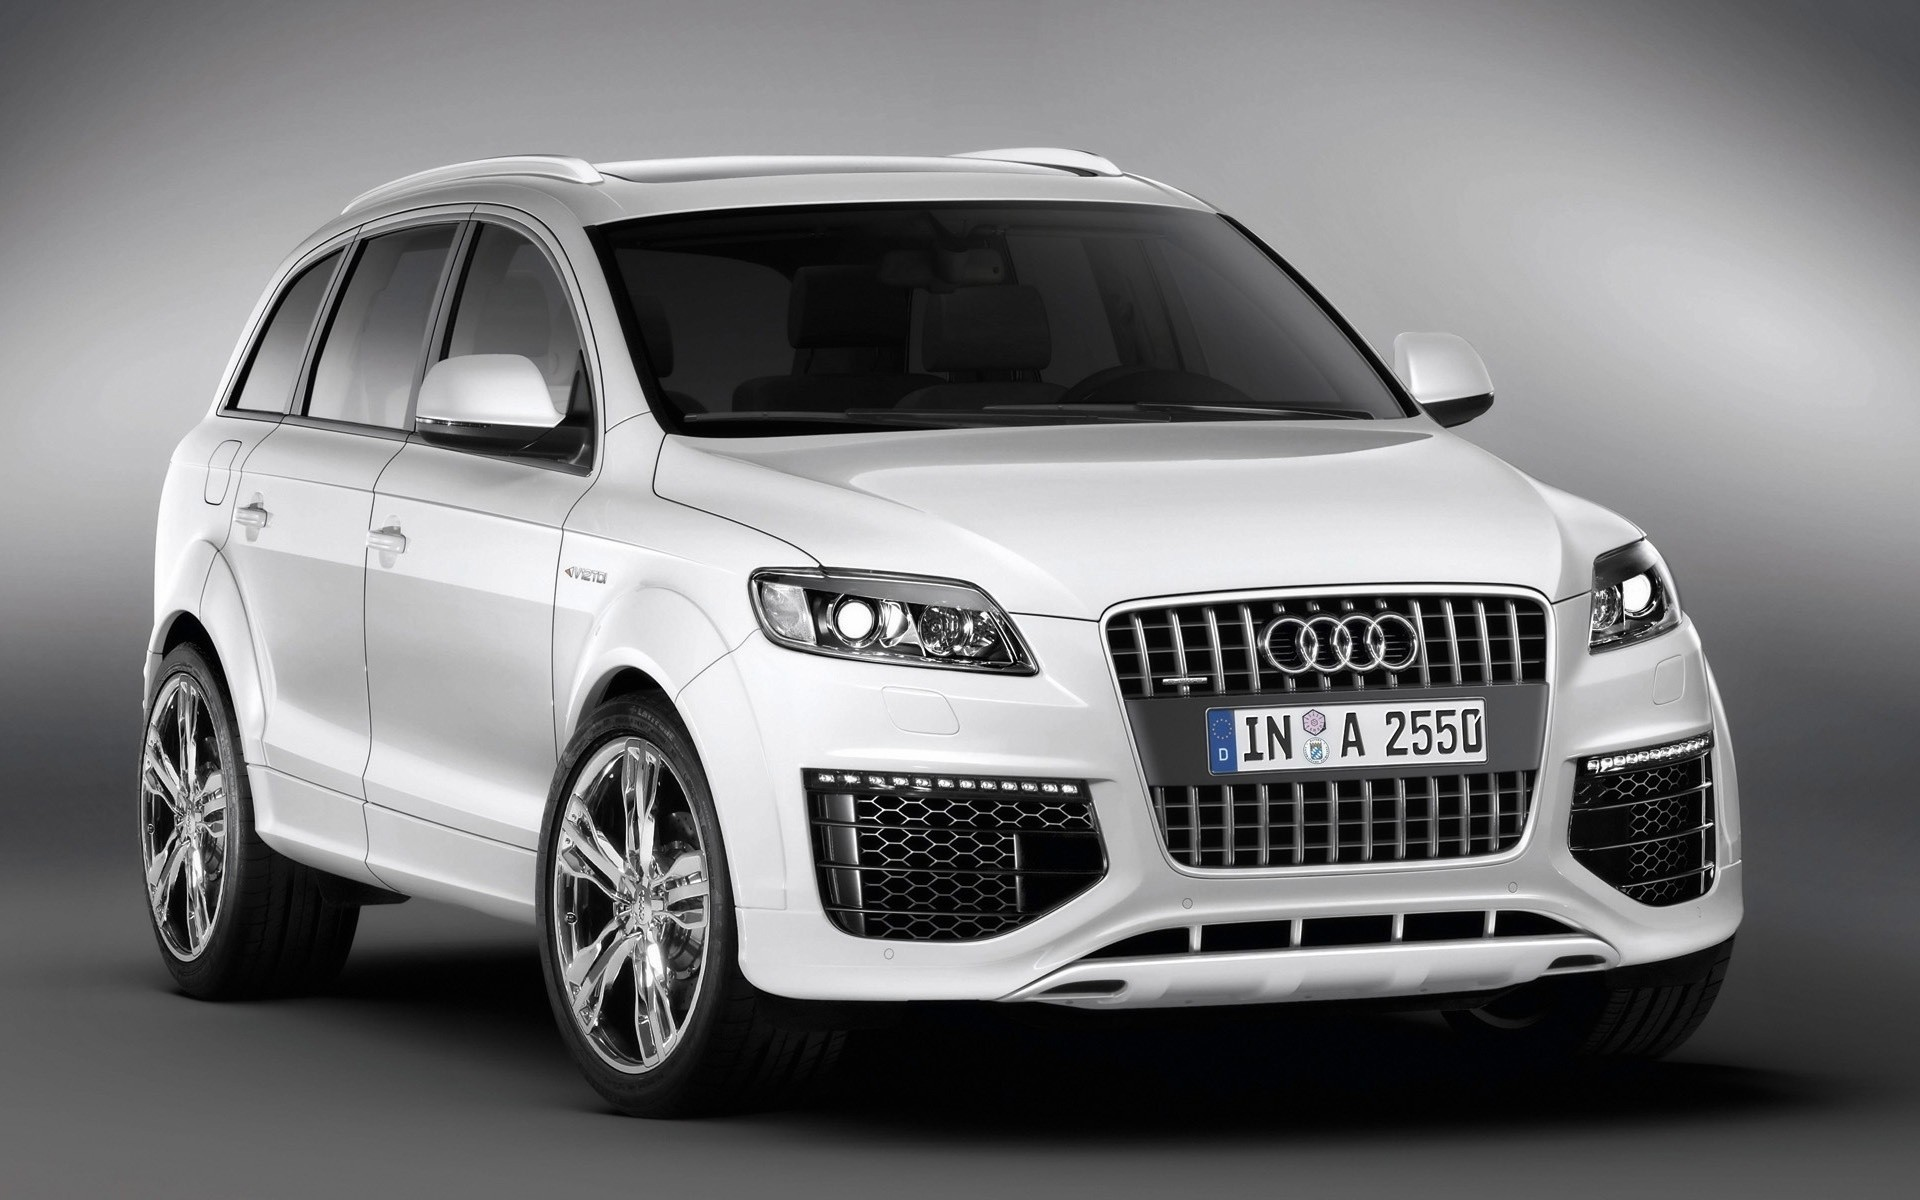 audi car vehicle automotive wheel drive sedan transportation system fast coupe audi q7